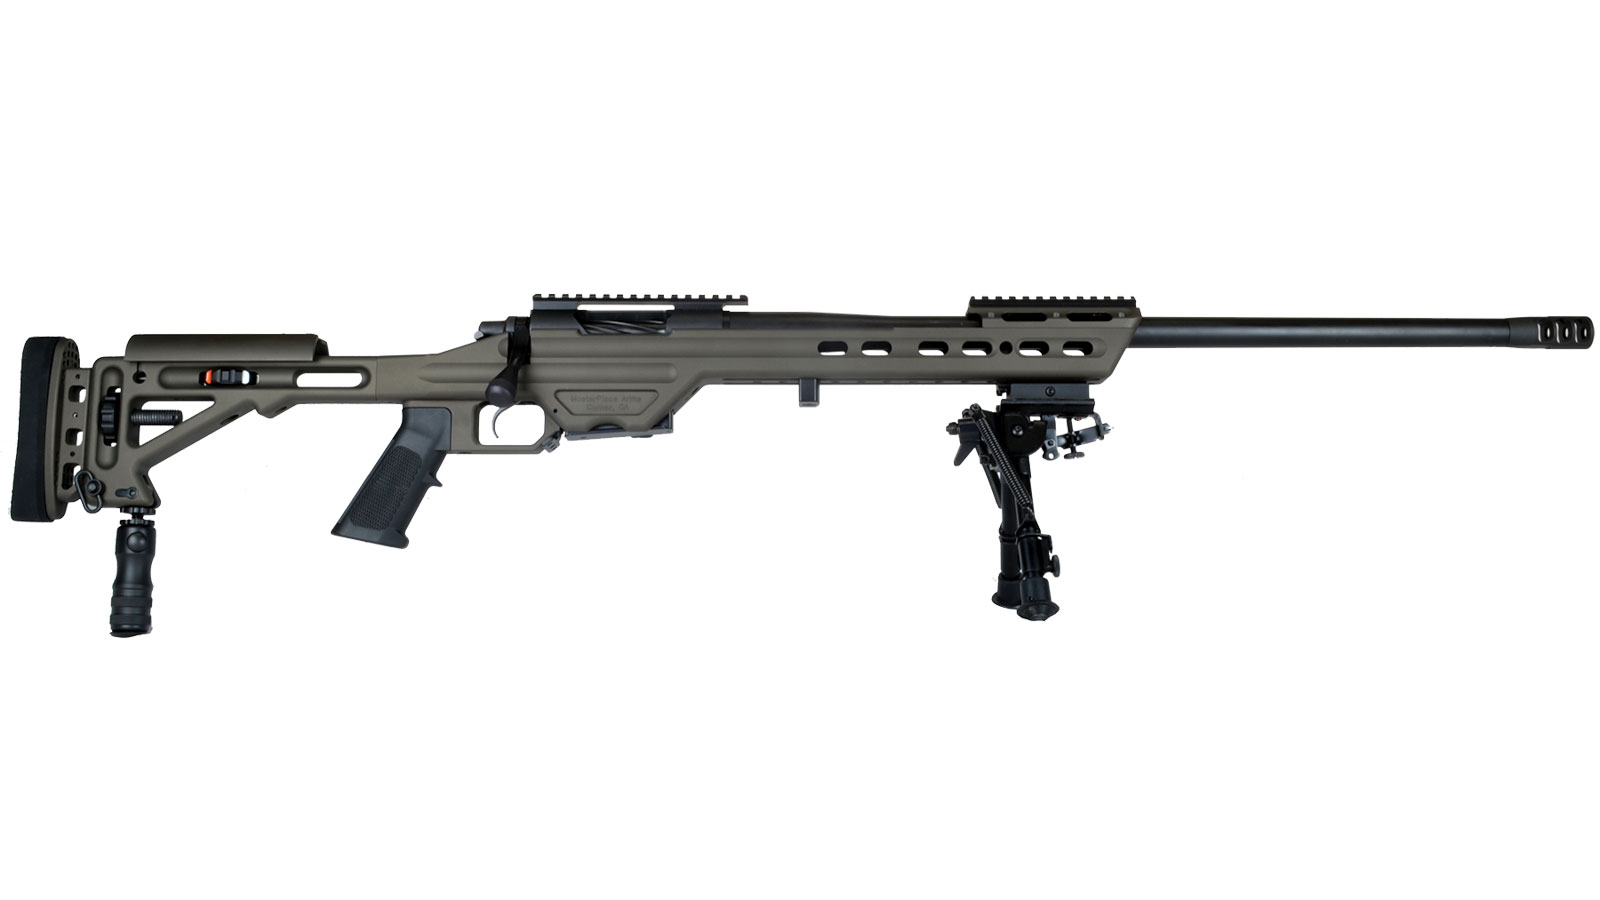 MASTERPIECE ARMS 300 WIN MAG BOLT ACTION RIFLE